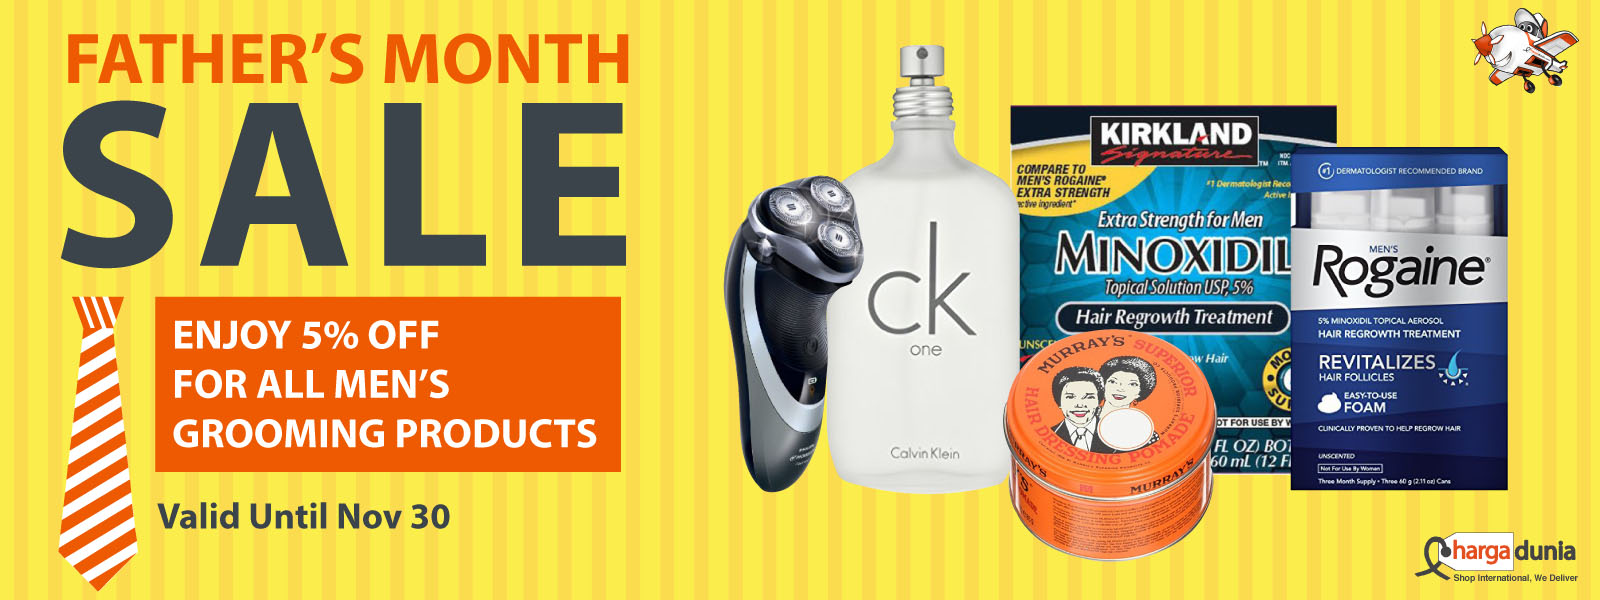 FATHER'S MONTH SALE!